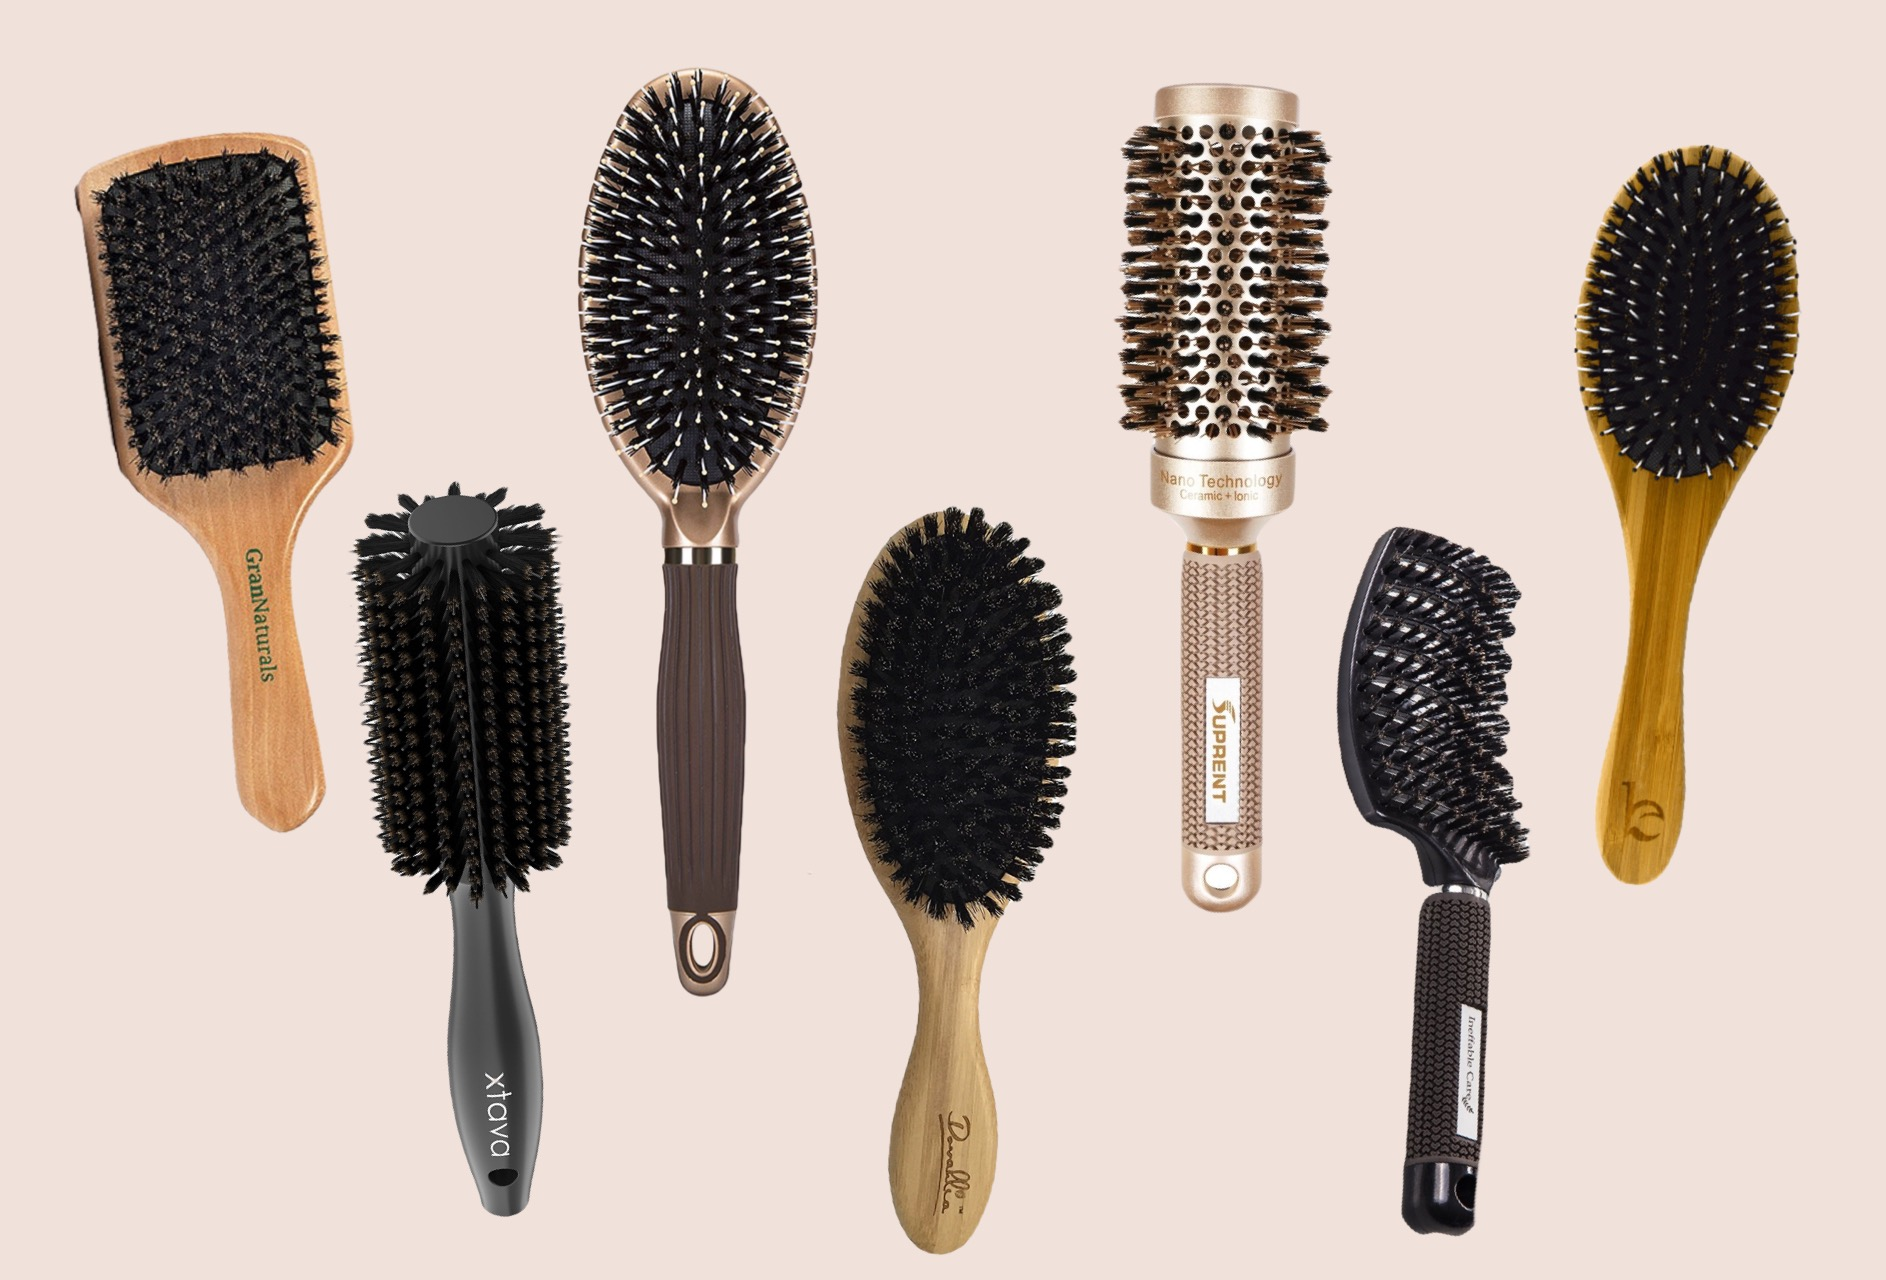 Best boar hair brush